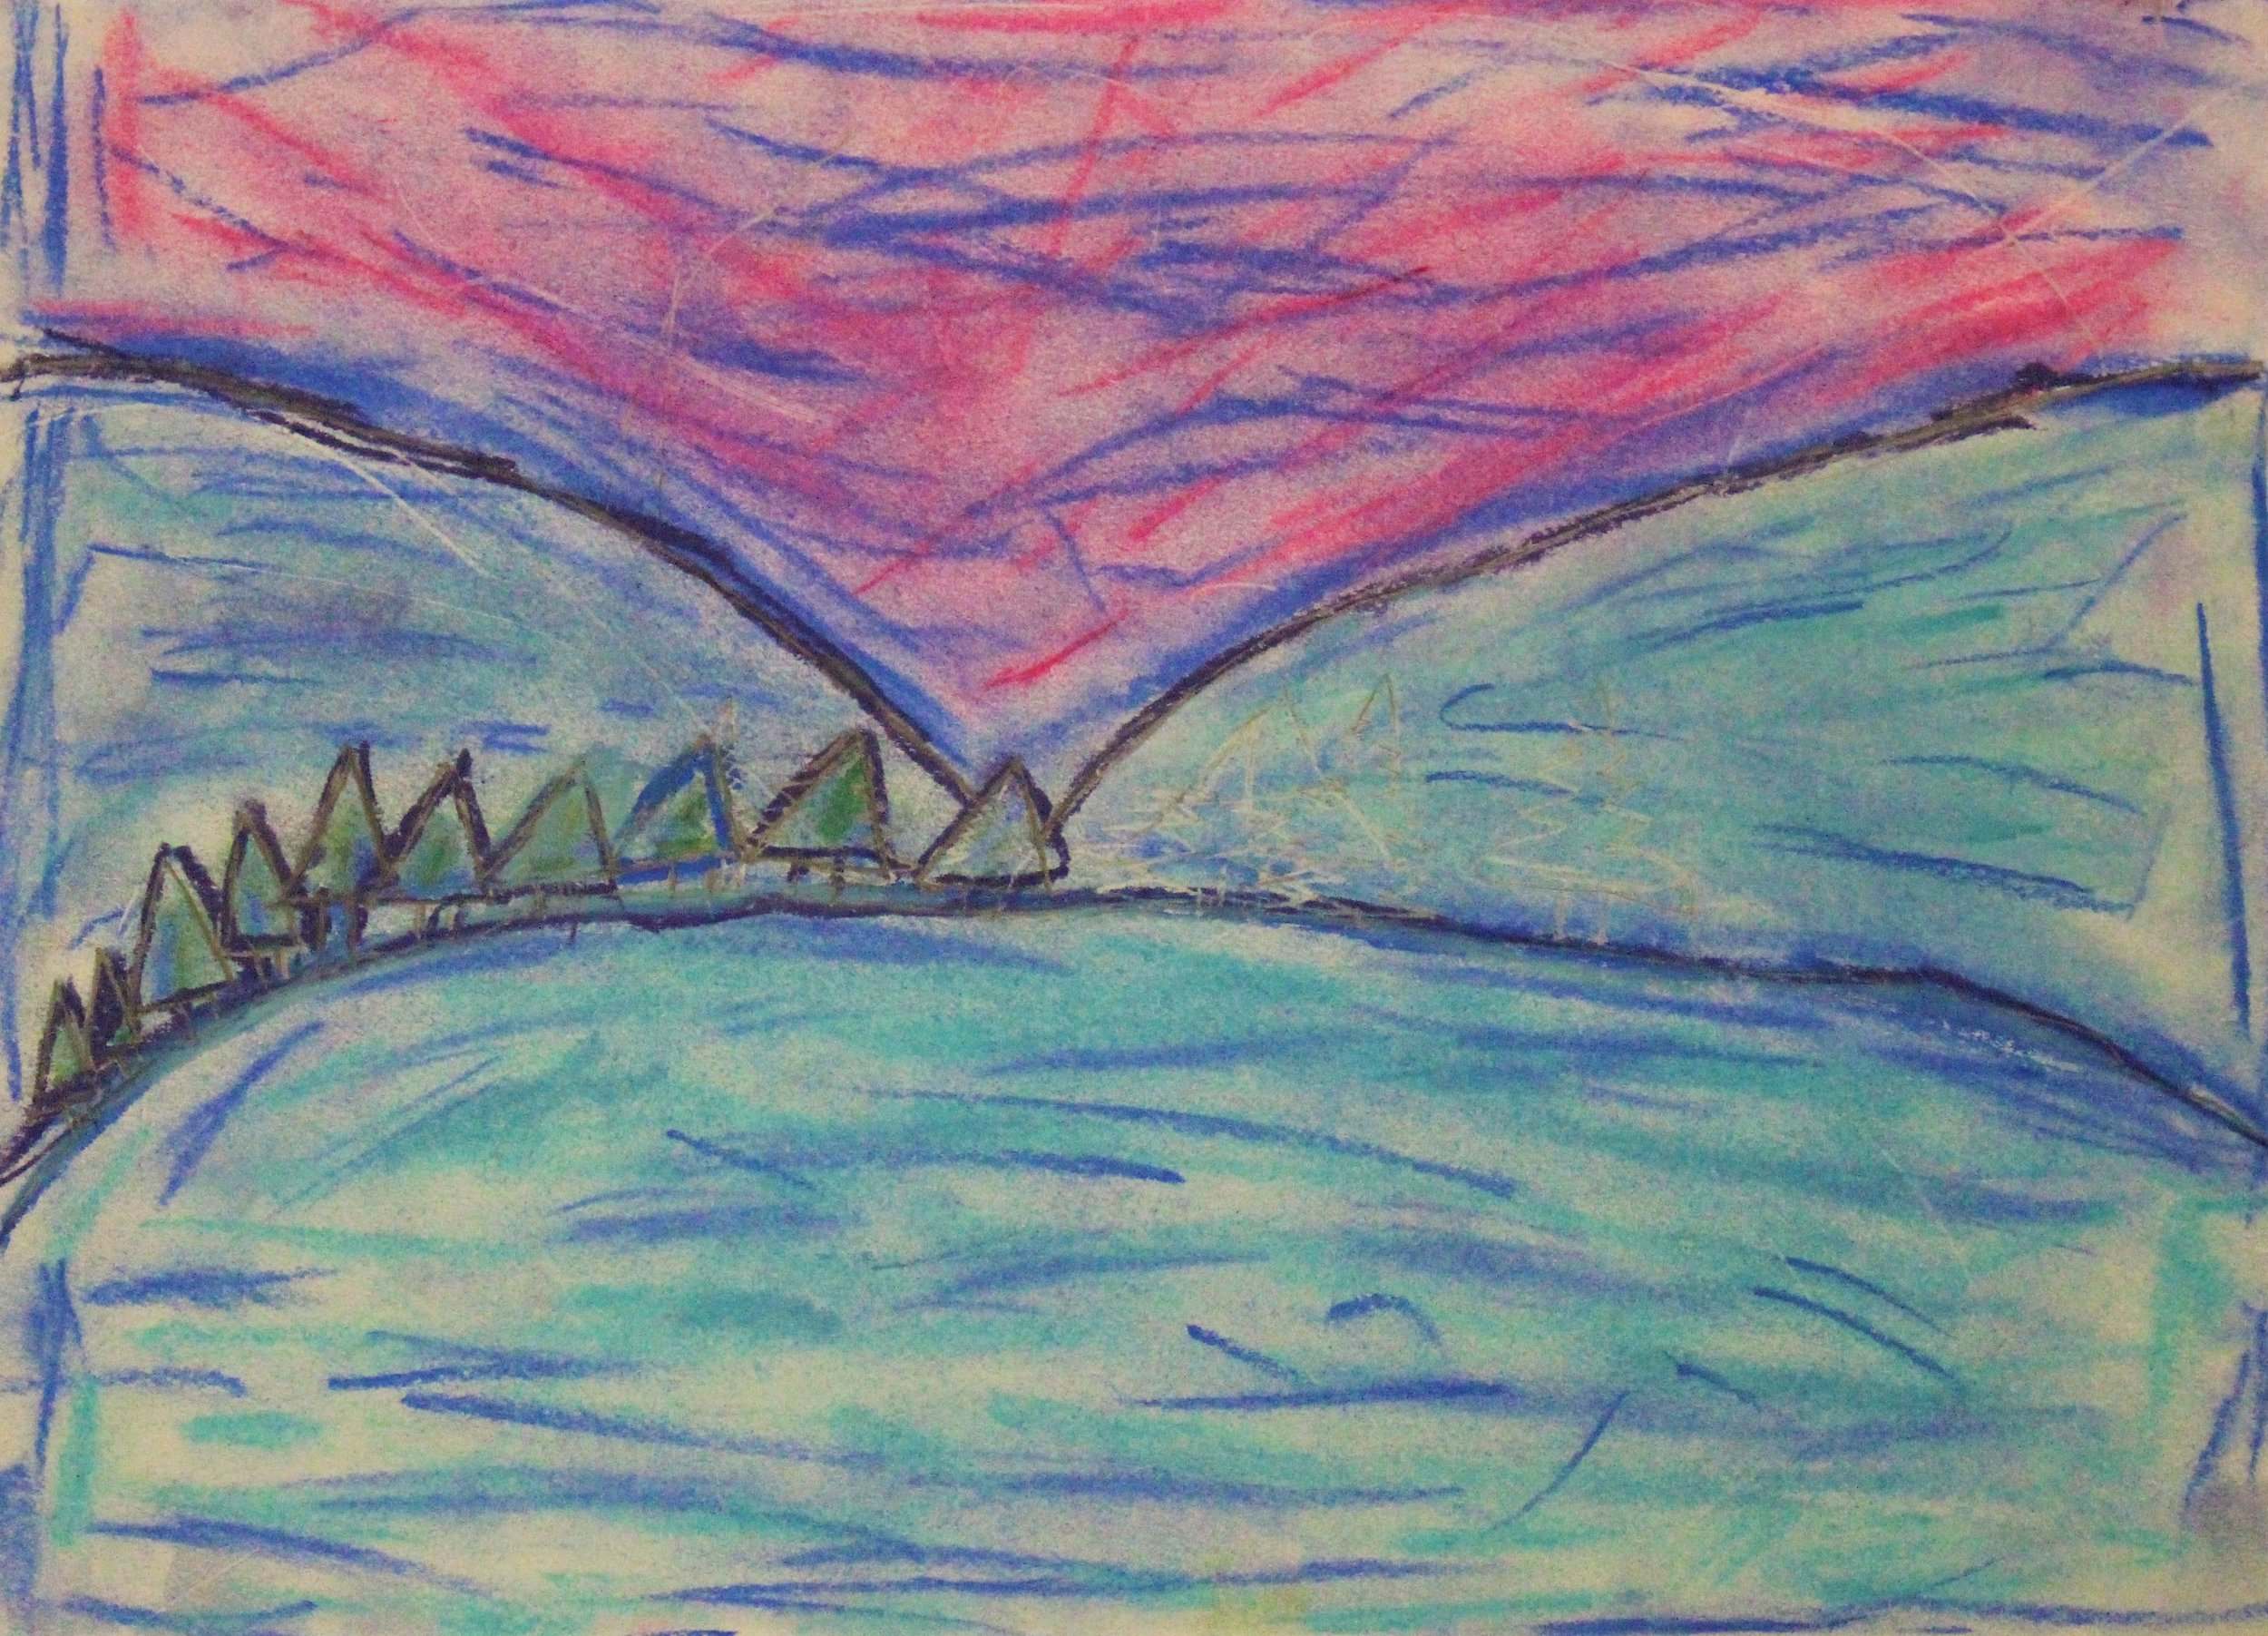 4th Grade:Alayna M. - Exploring Impressionism/Post-Impressionism with Landscapes